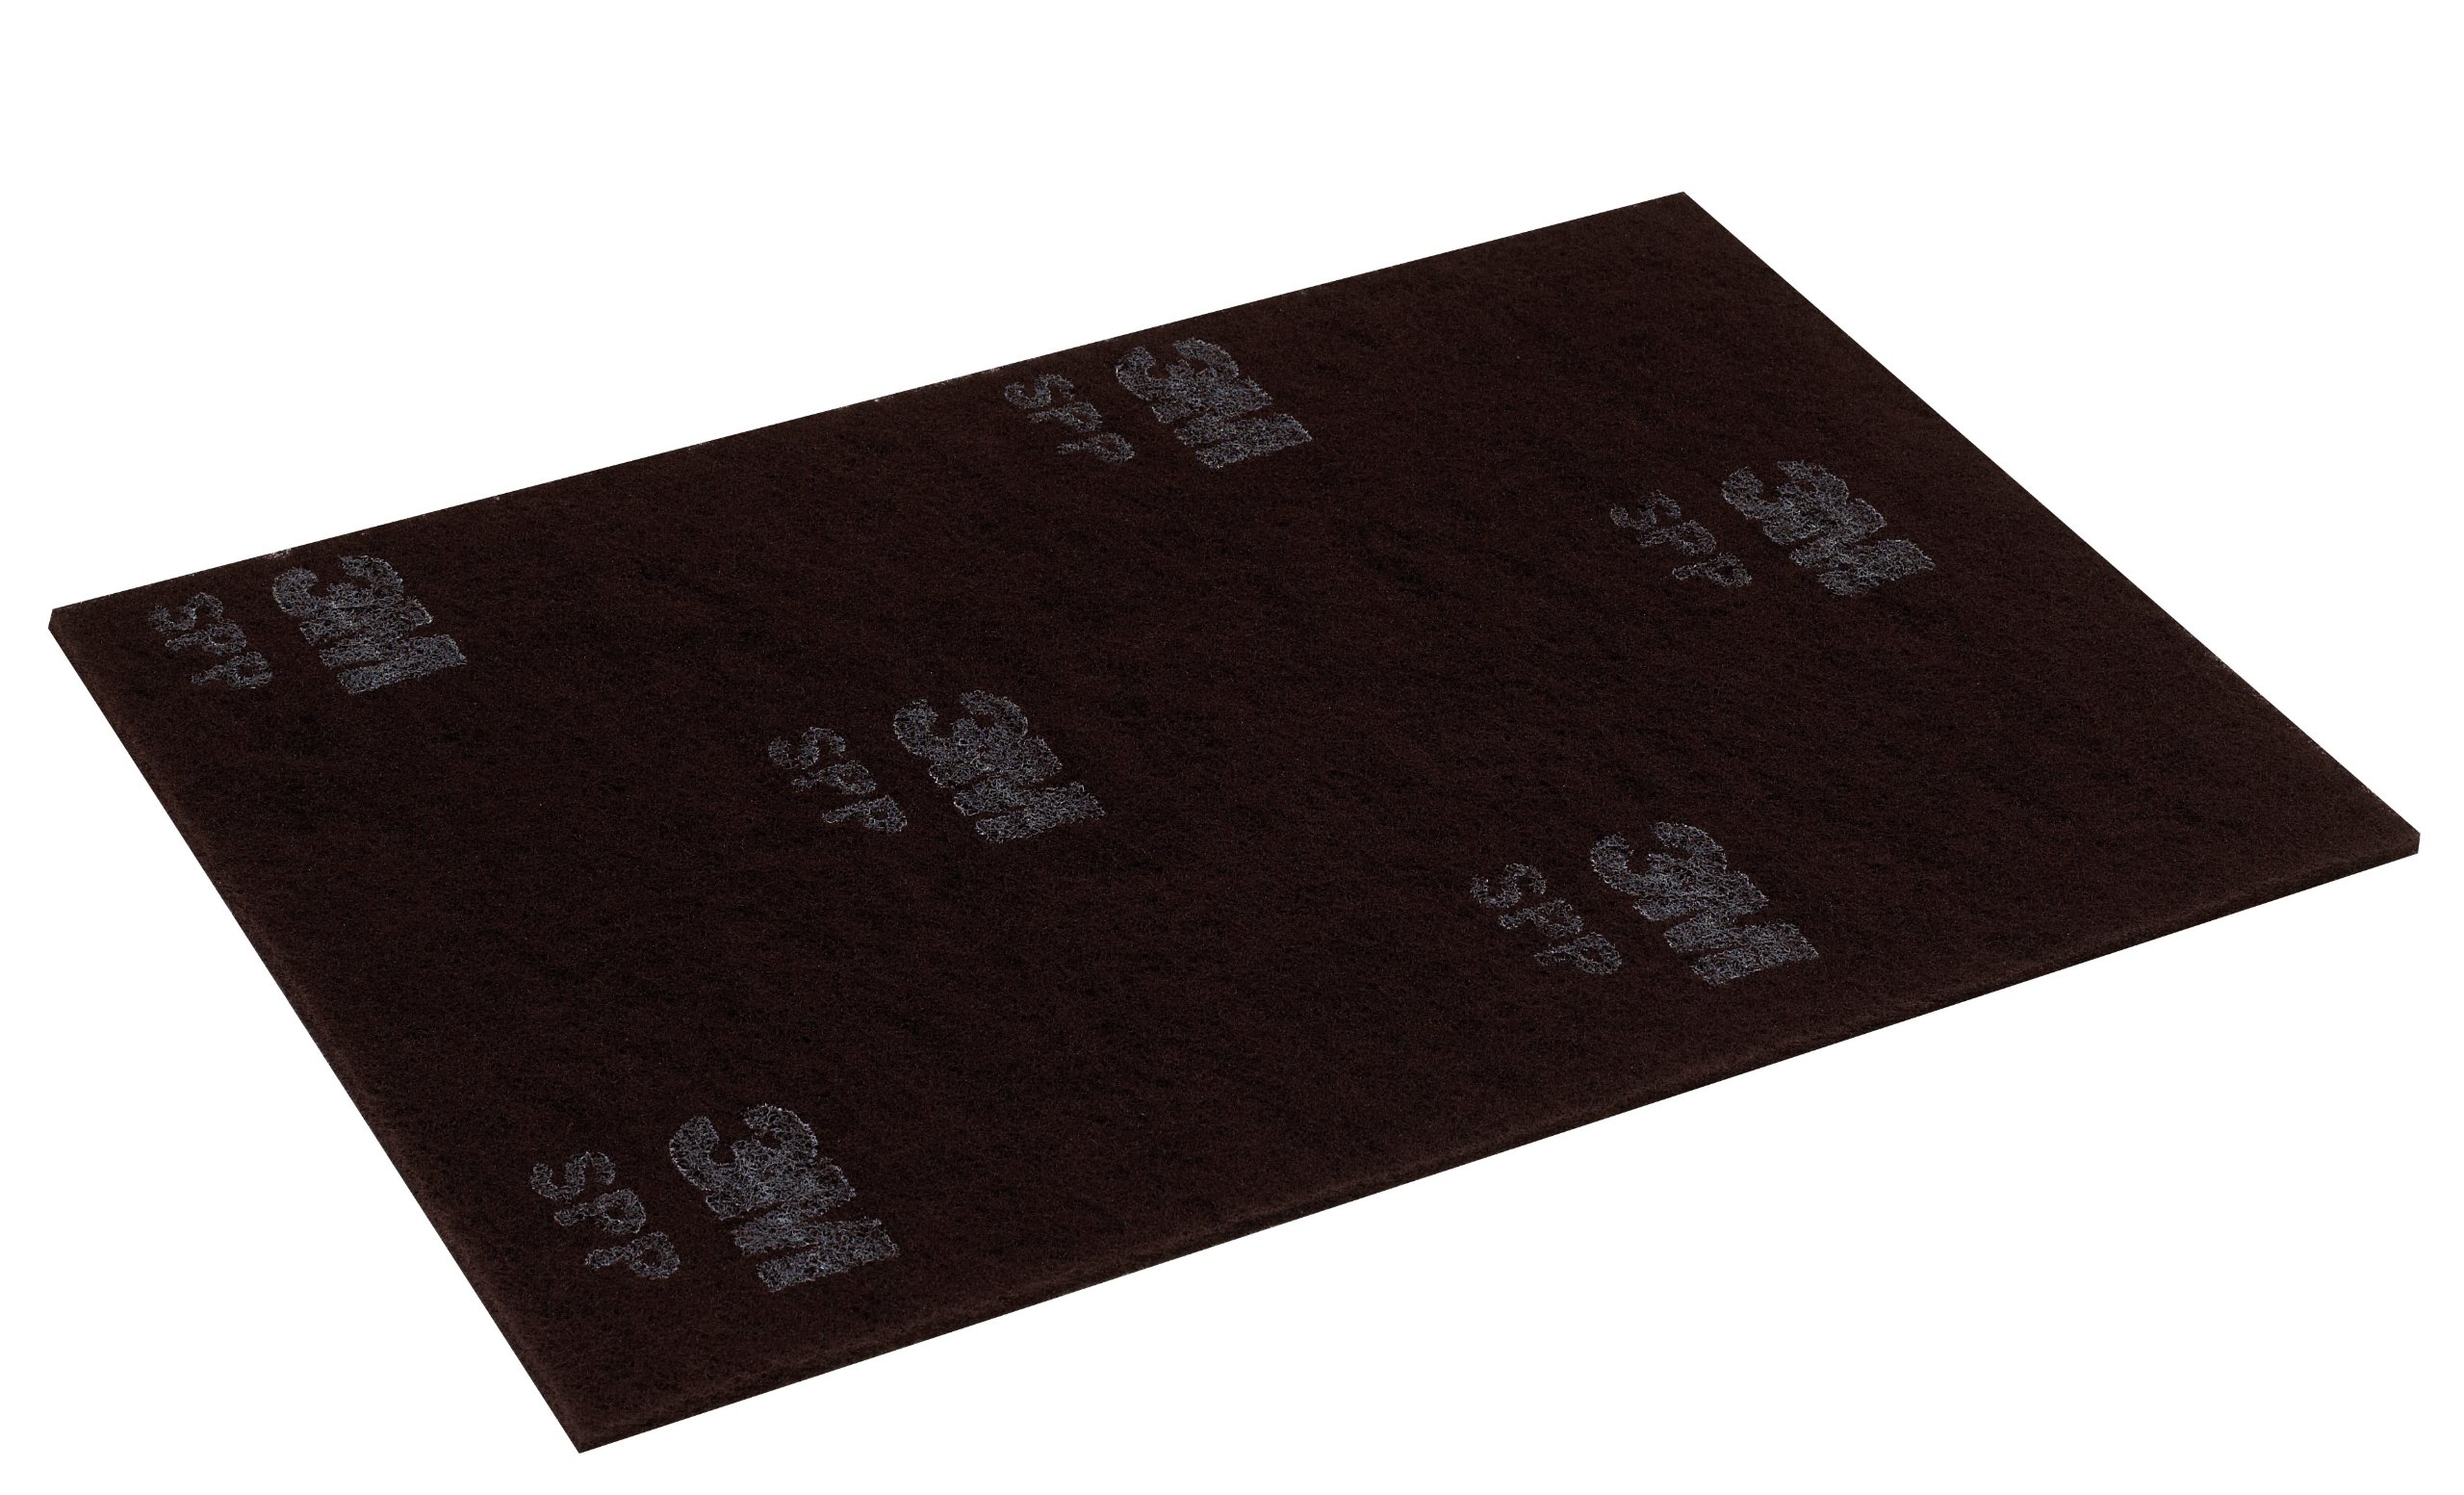 Scotch-Brite(TM) Surface Preparation Pad SPP14x20, 14 x 20 in, (Case of 10) by Unknown